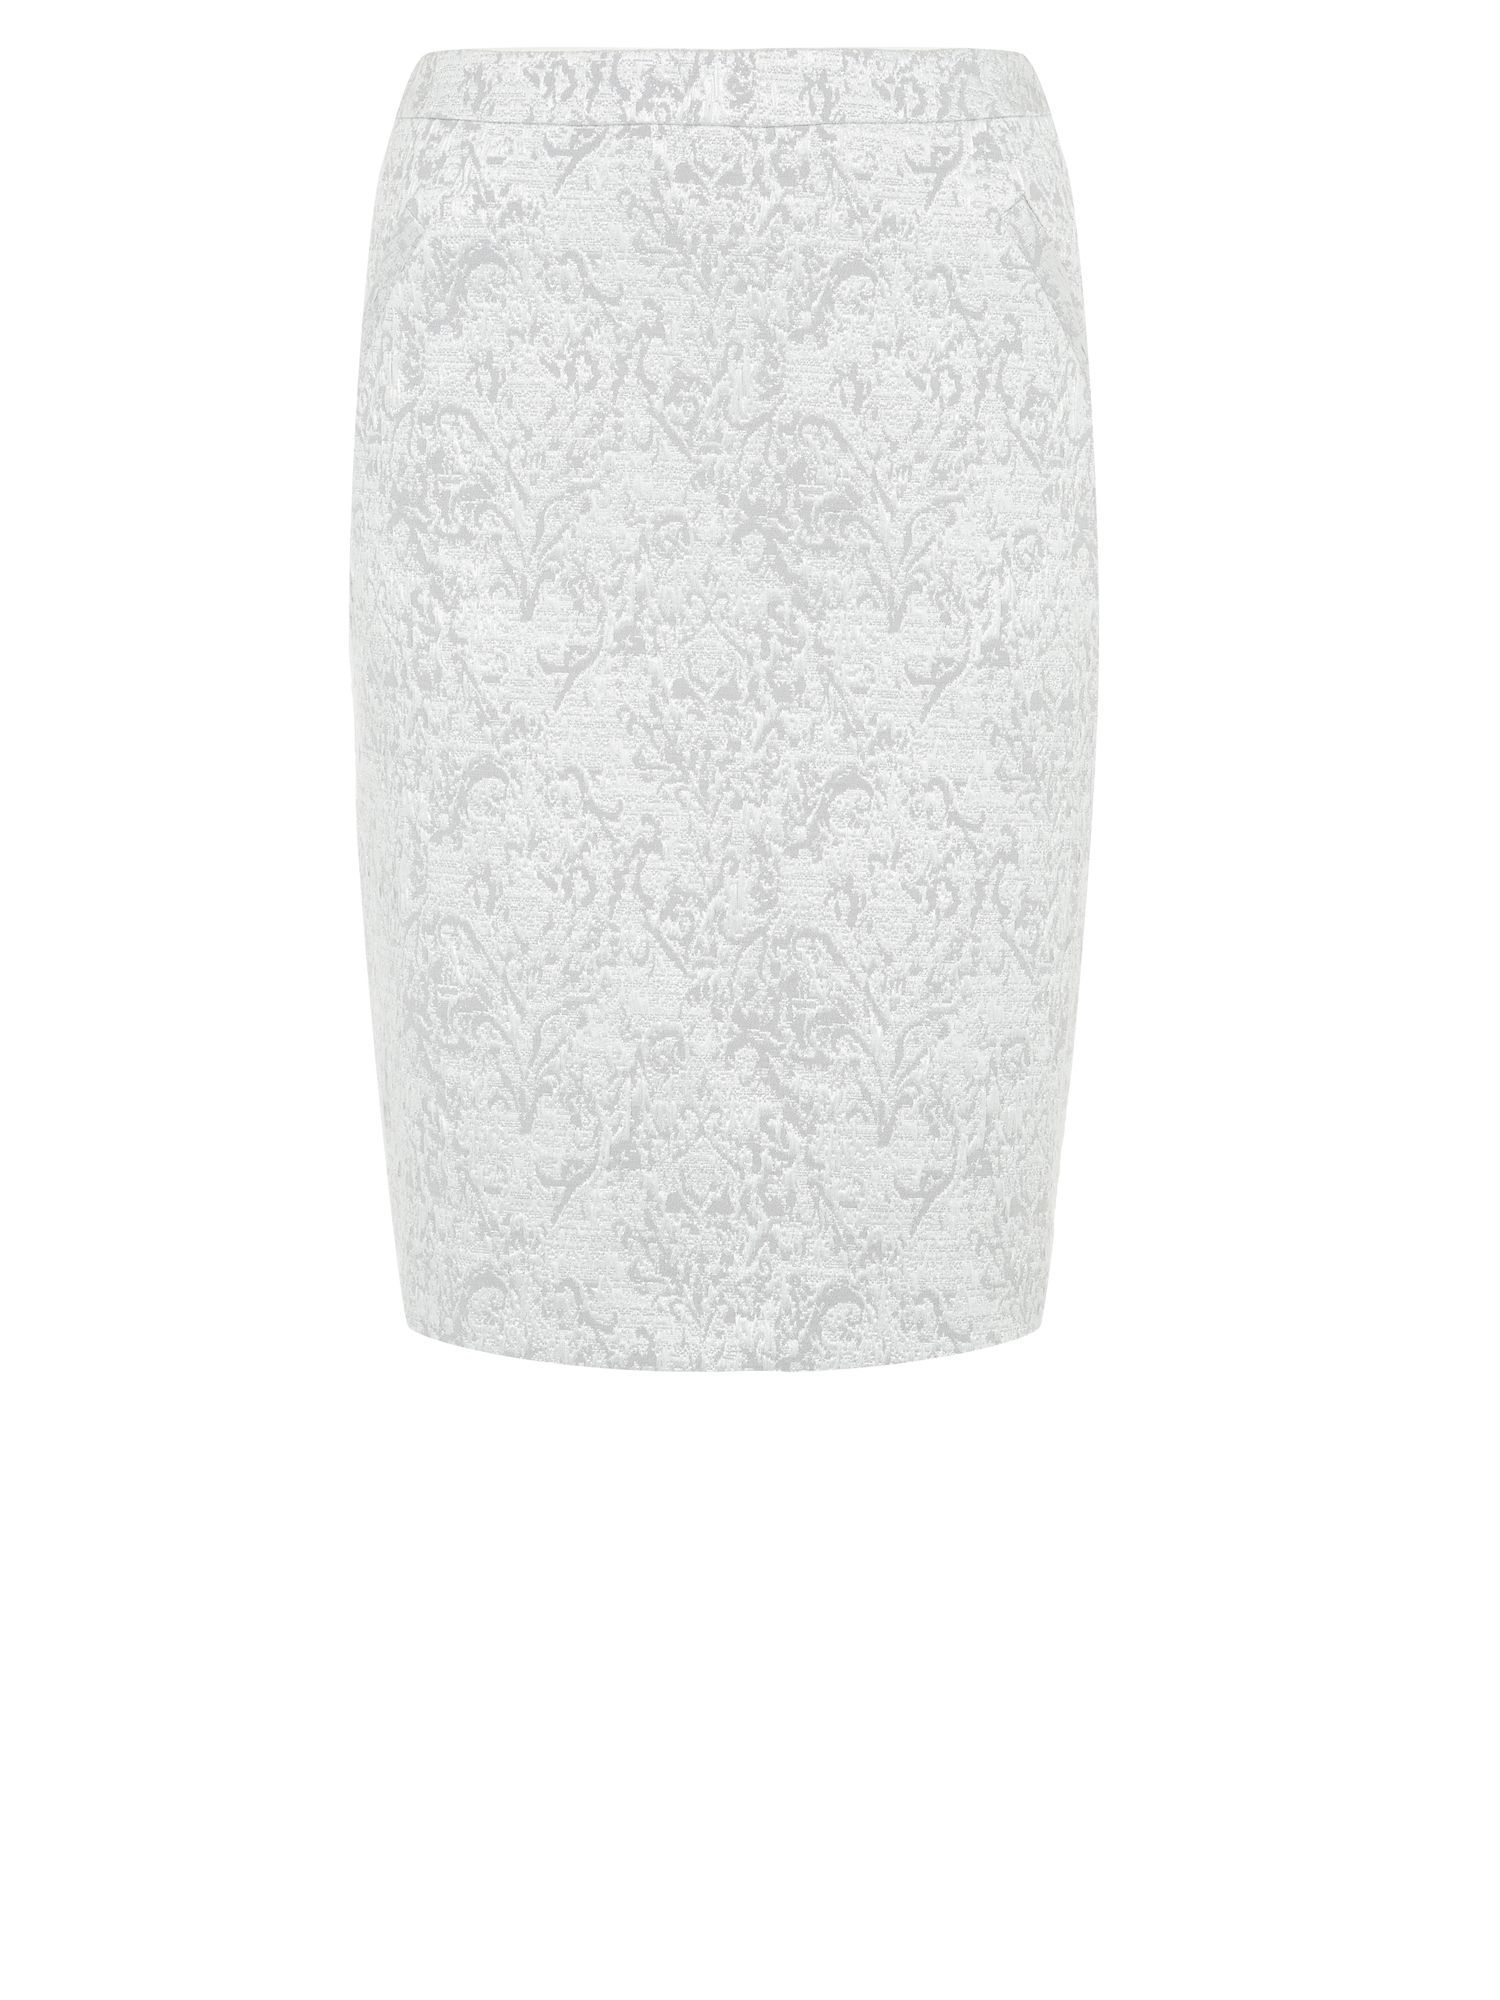 Sparkle jacquard skirt